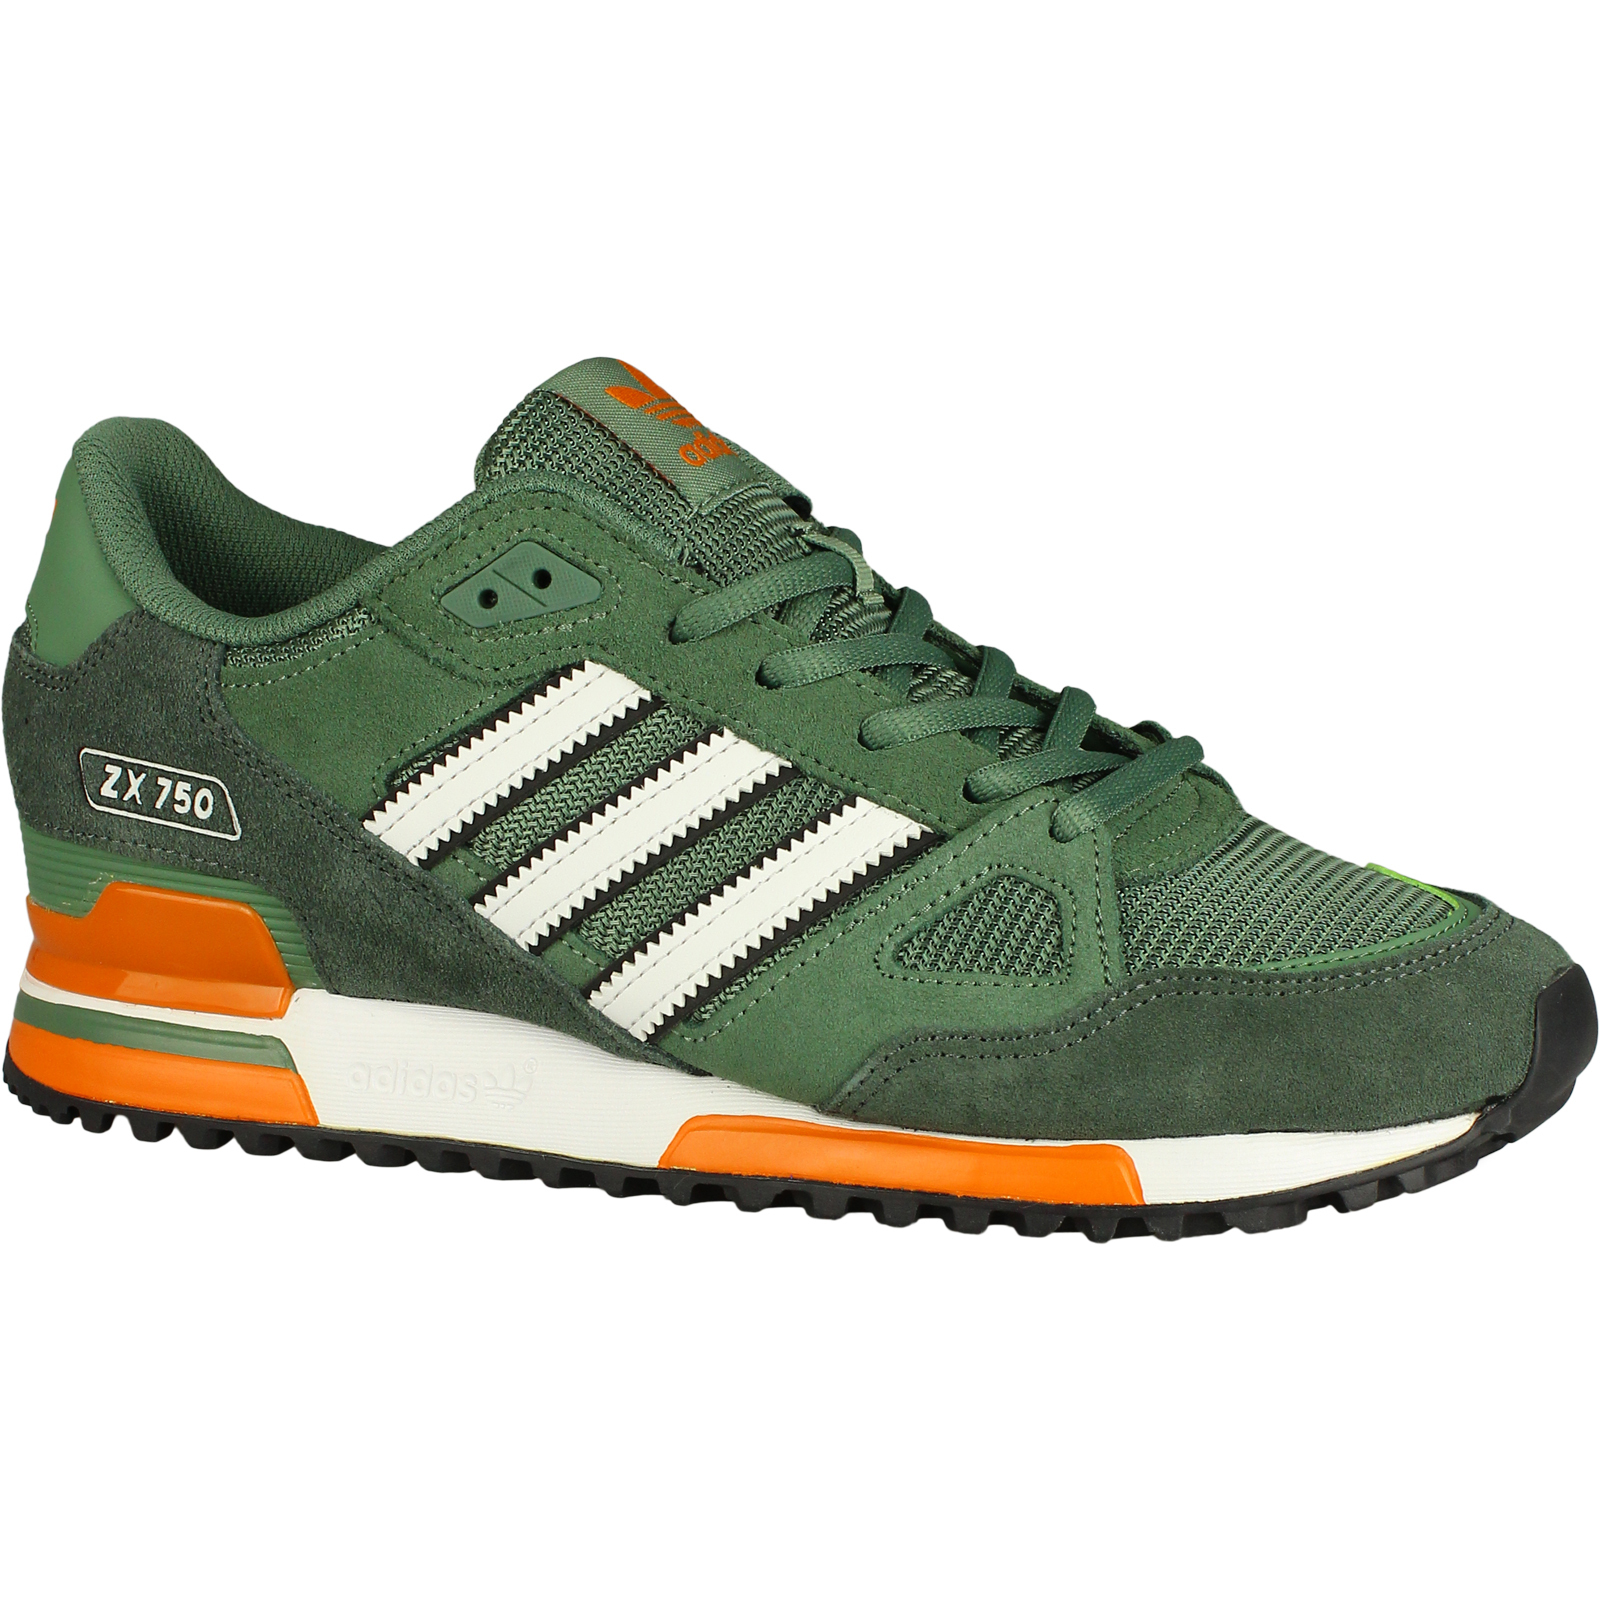 Sale Adidas Originals Zx 750 Couples Running Shoes BlackRedYellowGreen Zx 750 Green | Unique Designing